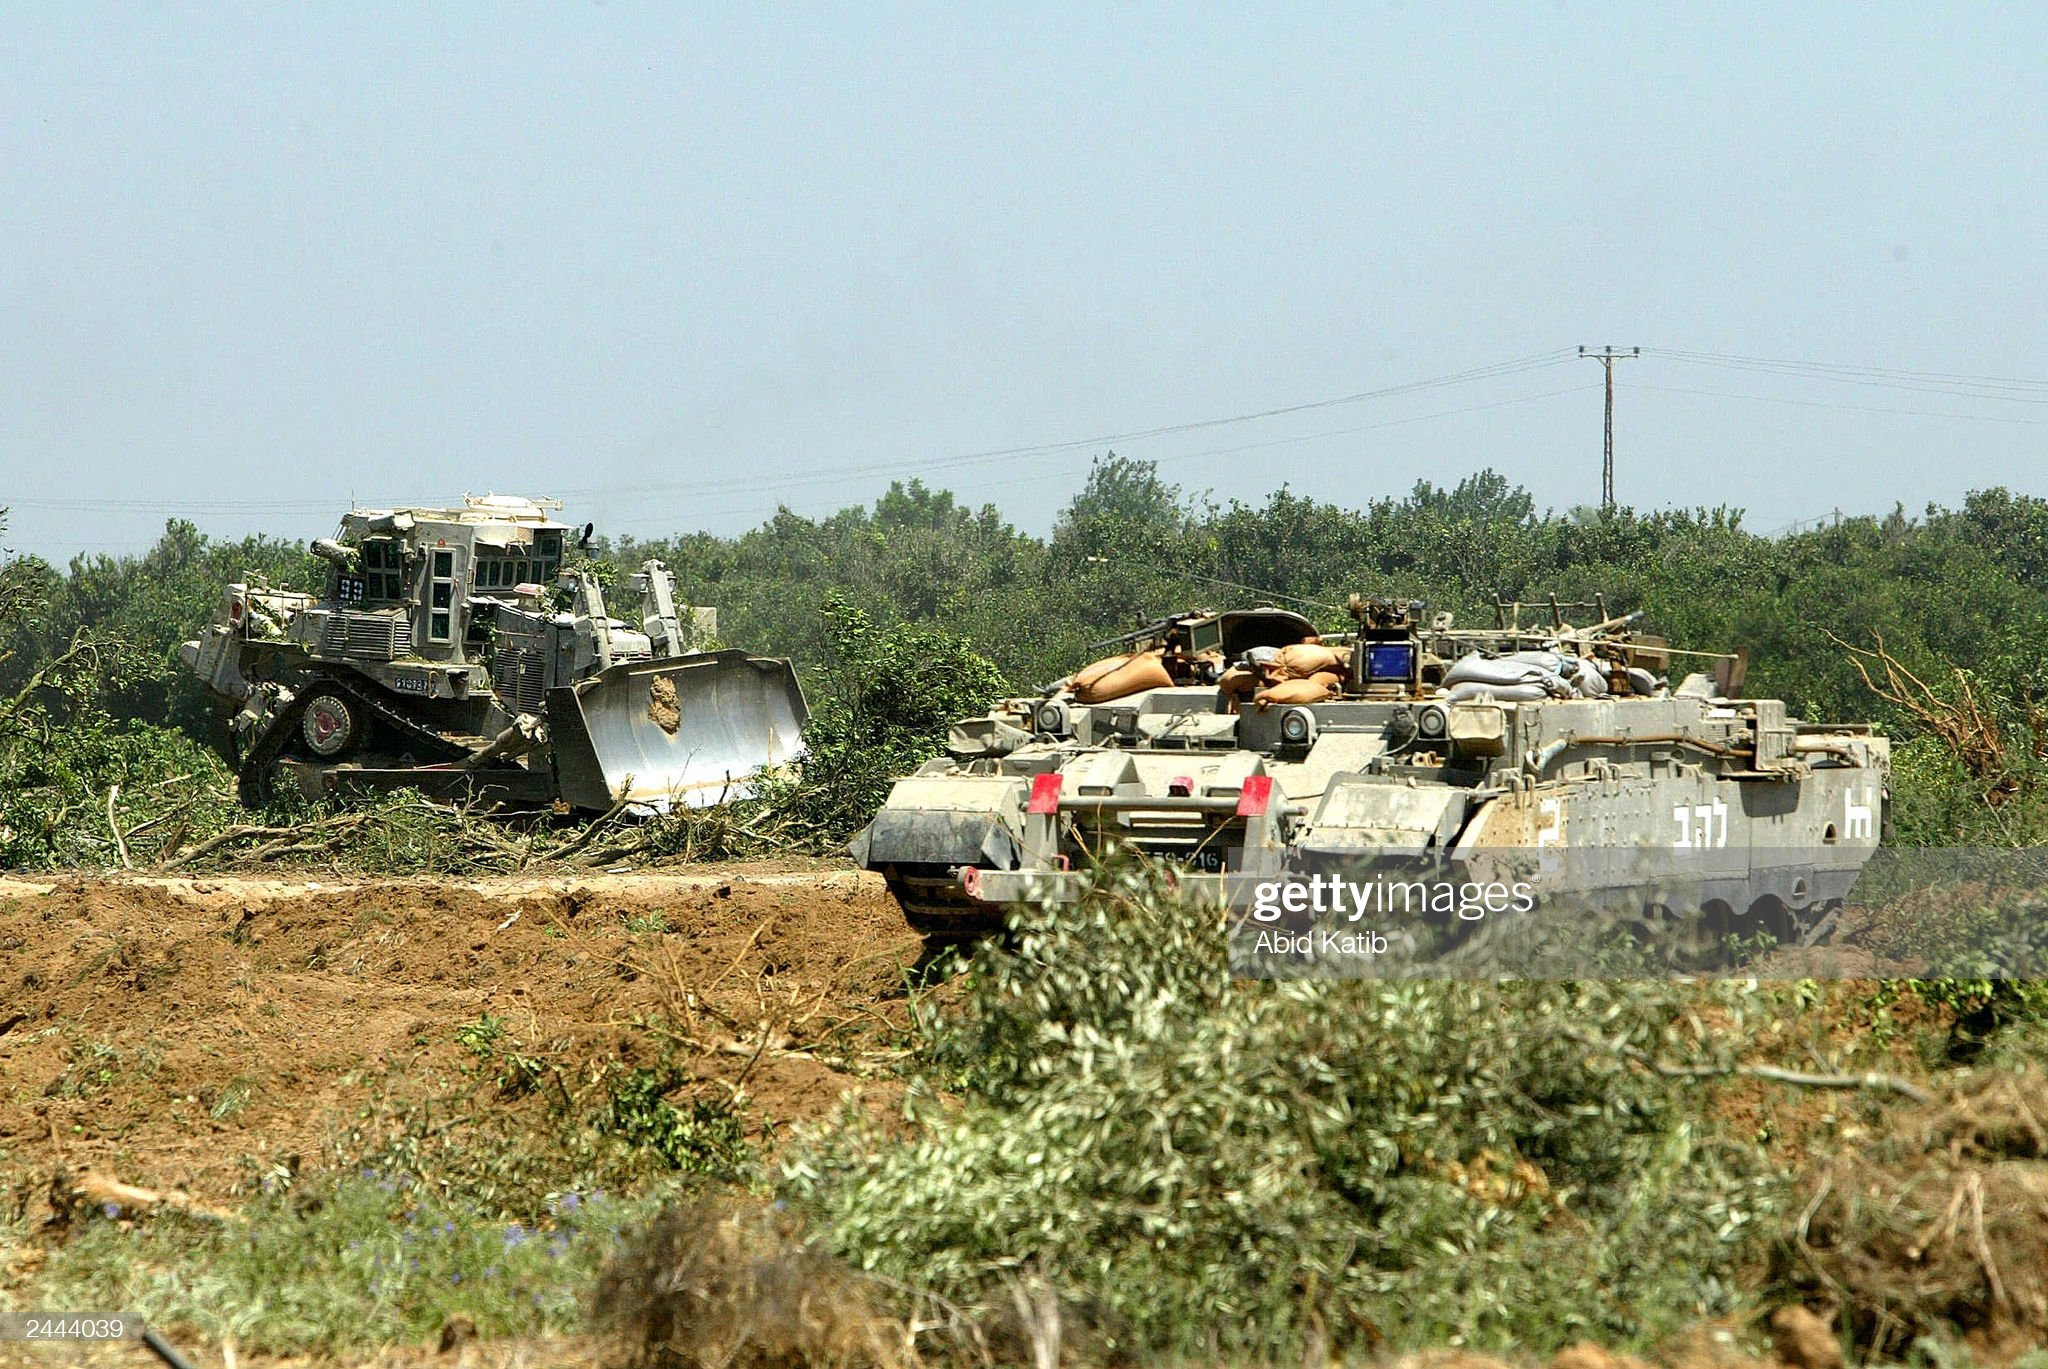 https://media.gettyimages.com/photos/israeli-tanks-and-bulldozers-destroy-orange-groves-august-29-2003-in-picture-id2444039?s=2048x2048